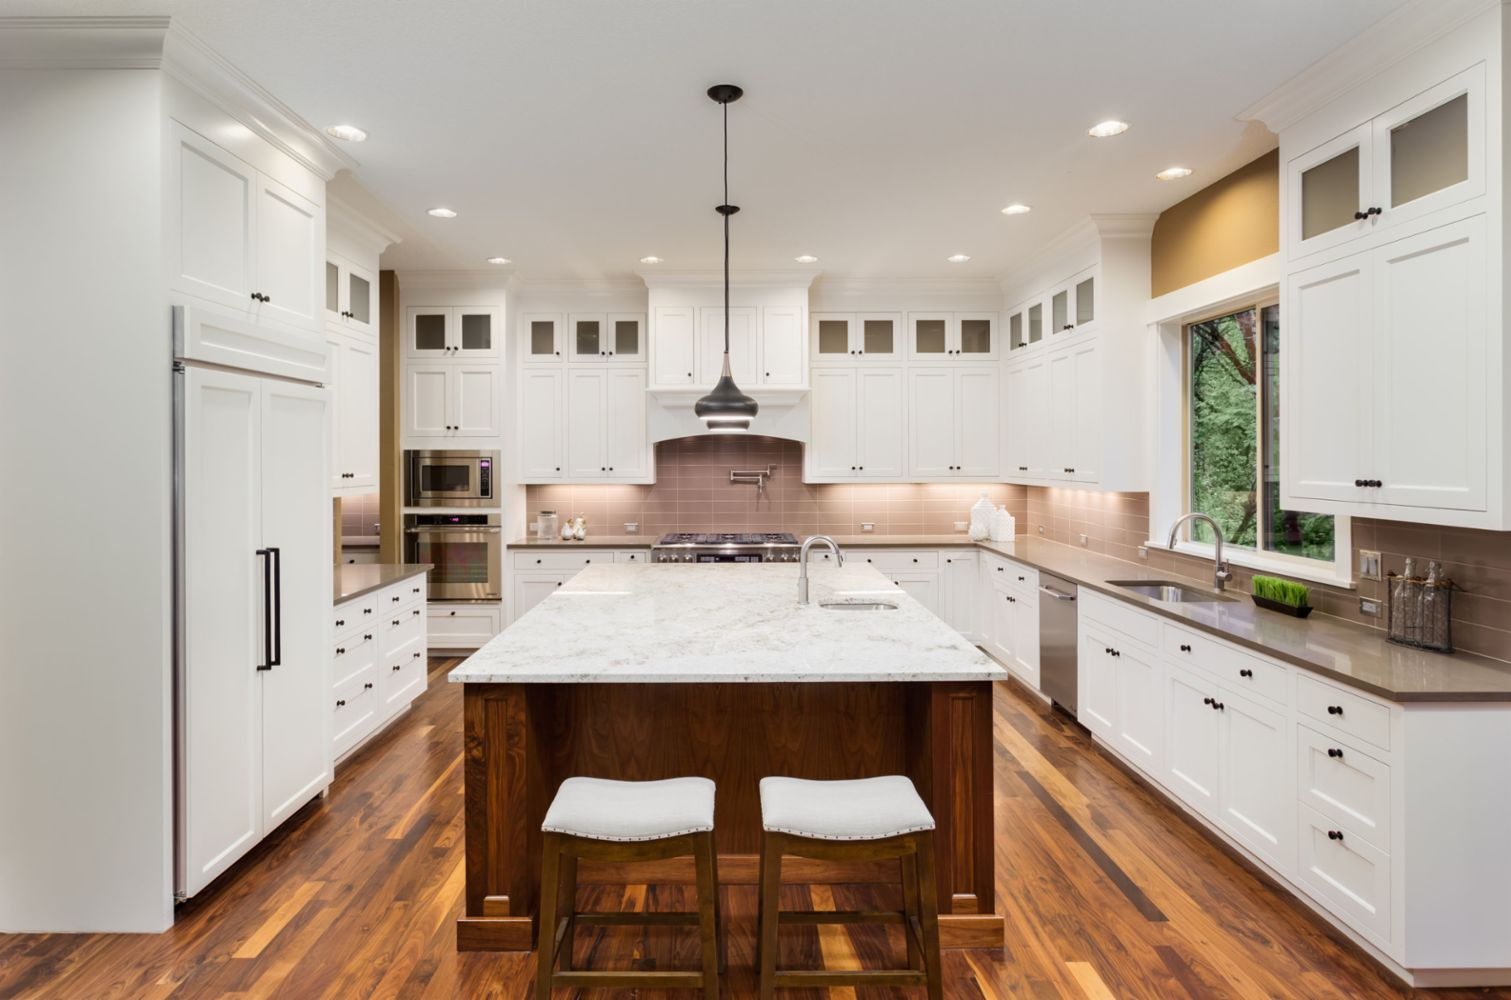 Kitchen Cabinets and Remodeling in Chicago, IL - Planet Cabinets